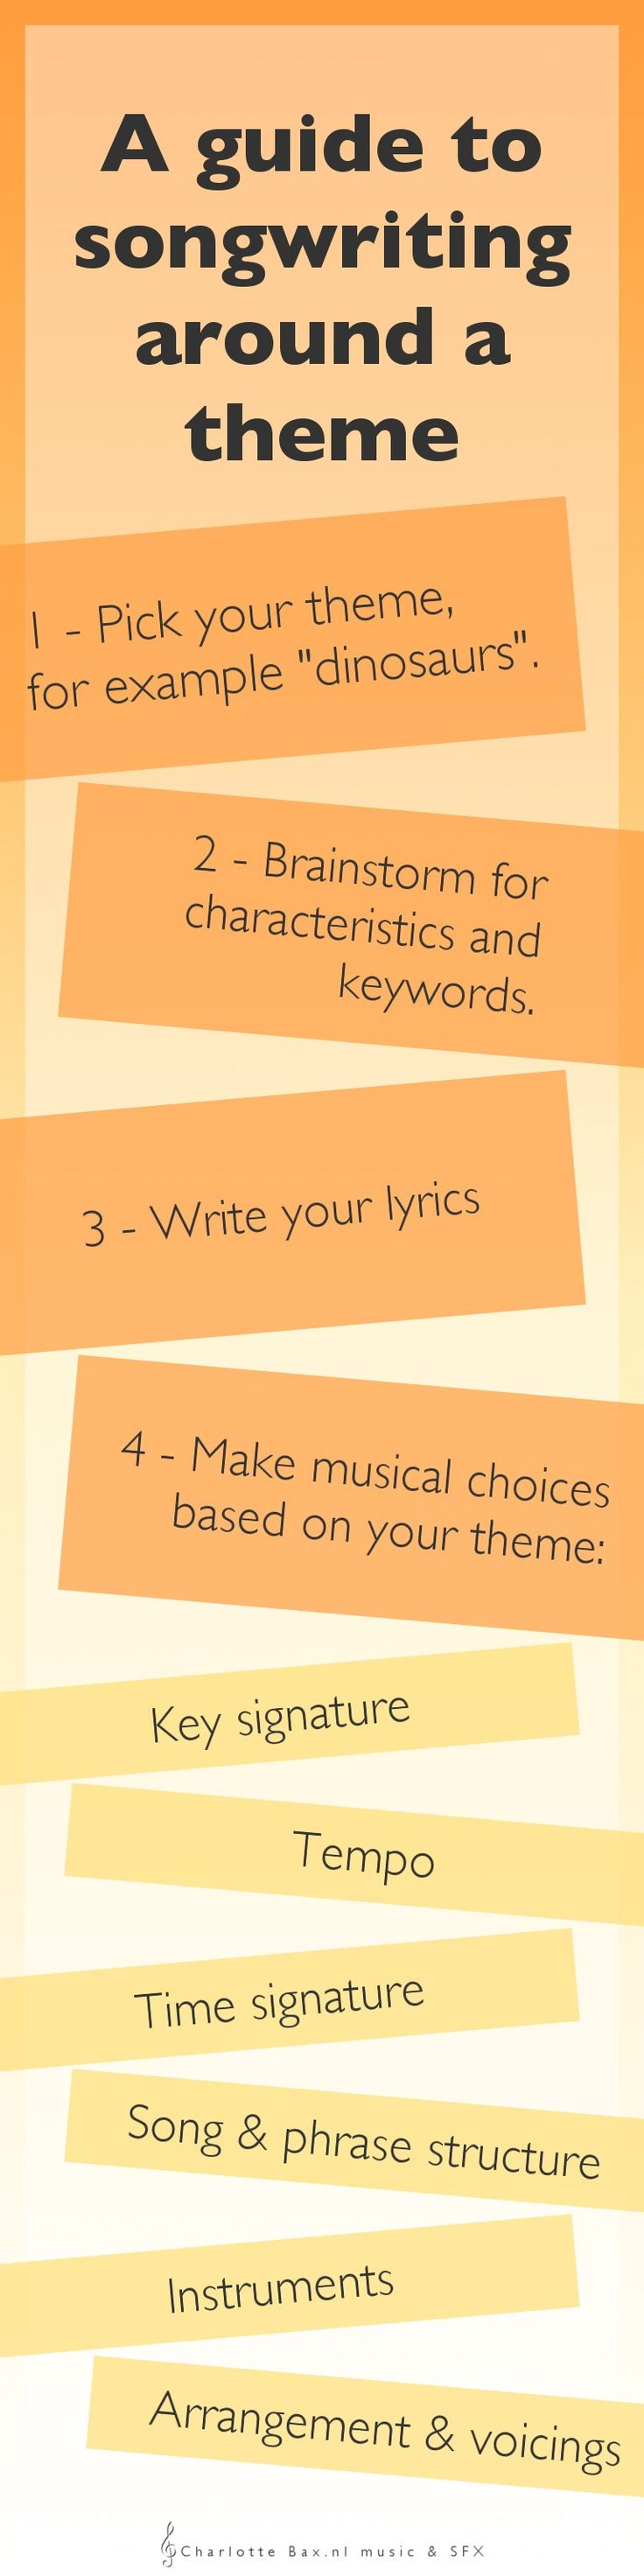 A guide to songwriting around a theme: 6 invaluable tips on how to incorporate your theme not only into your lyrics of your song, but also in every aspect of the music.